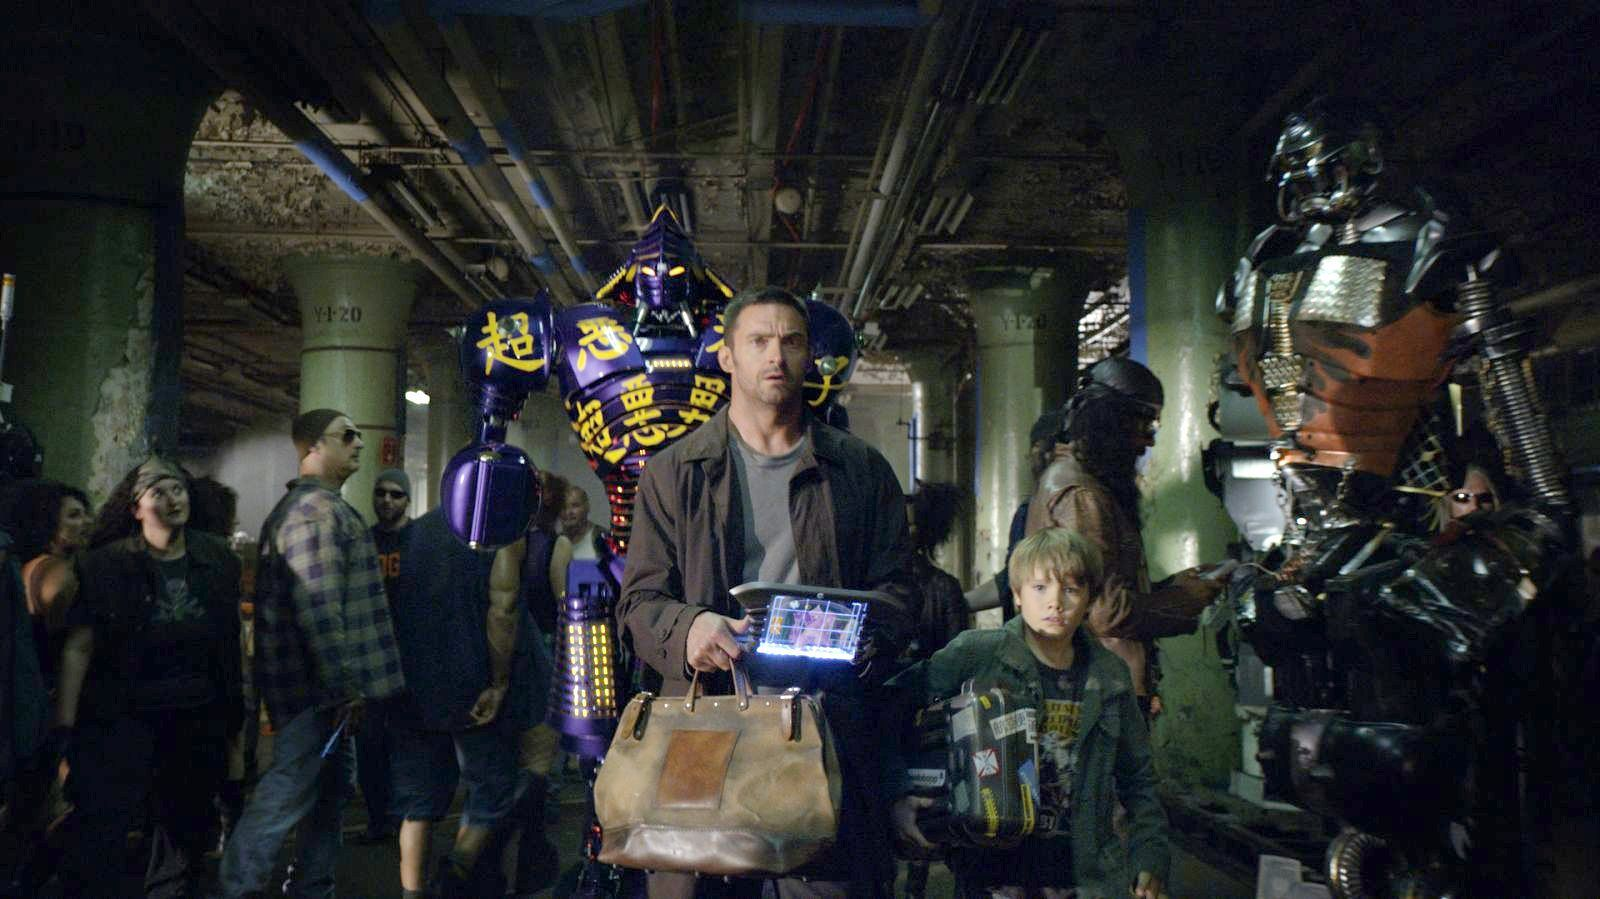 When will Real steel 2 waiting for premiere date New release date on DateRelizcom trailers